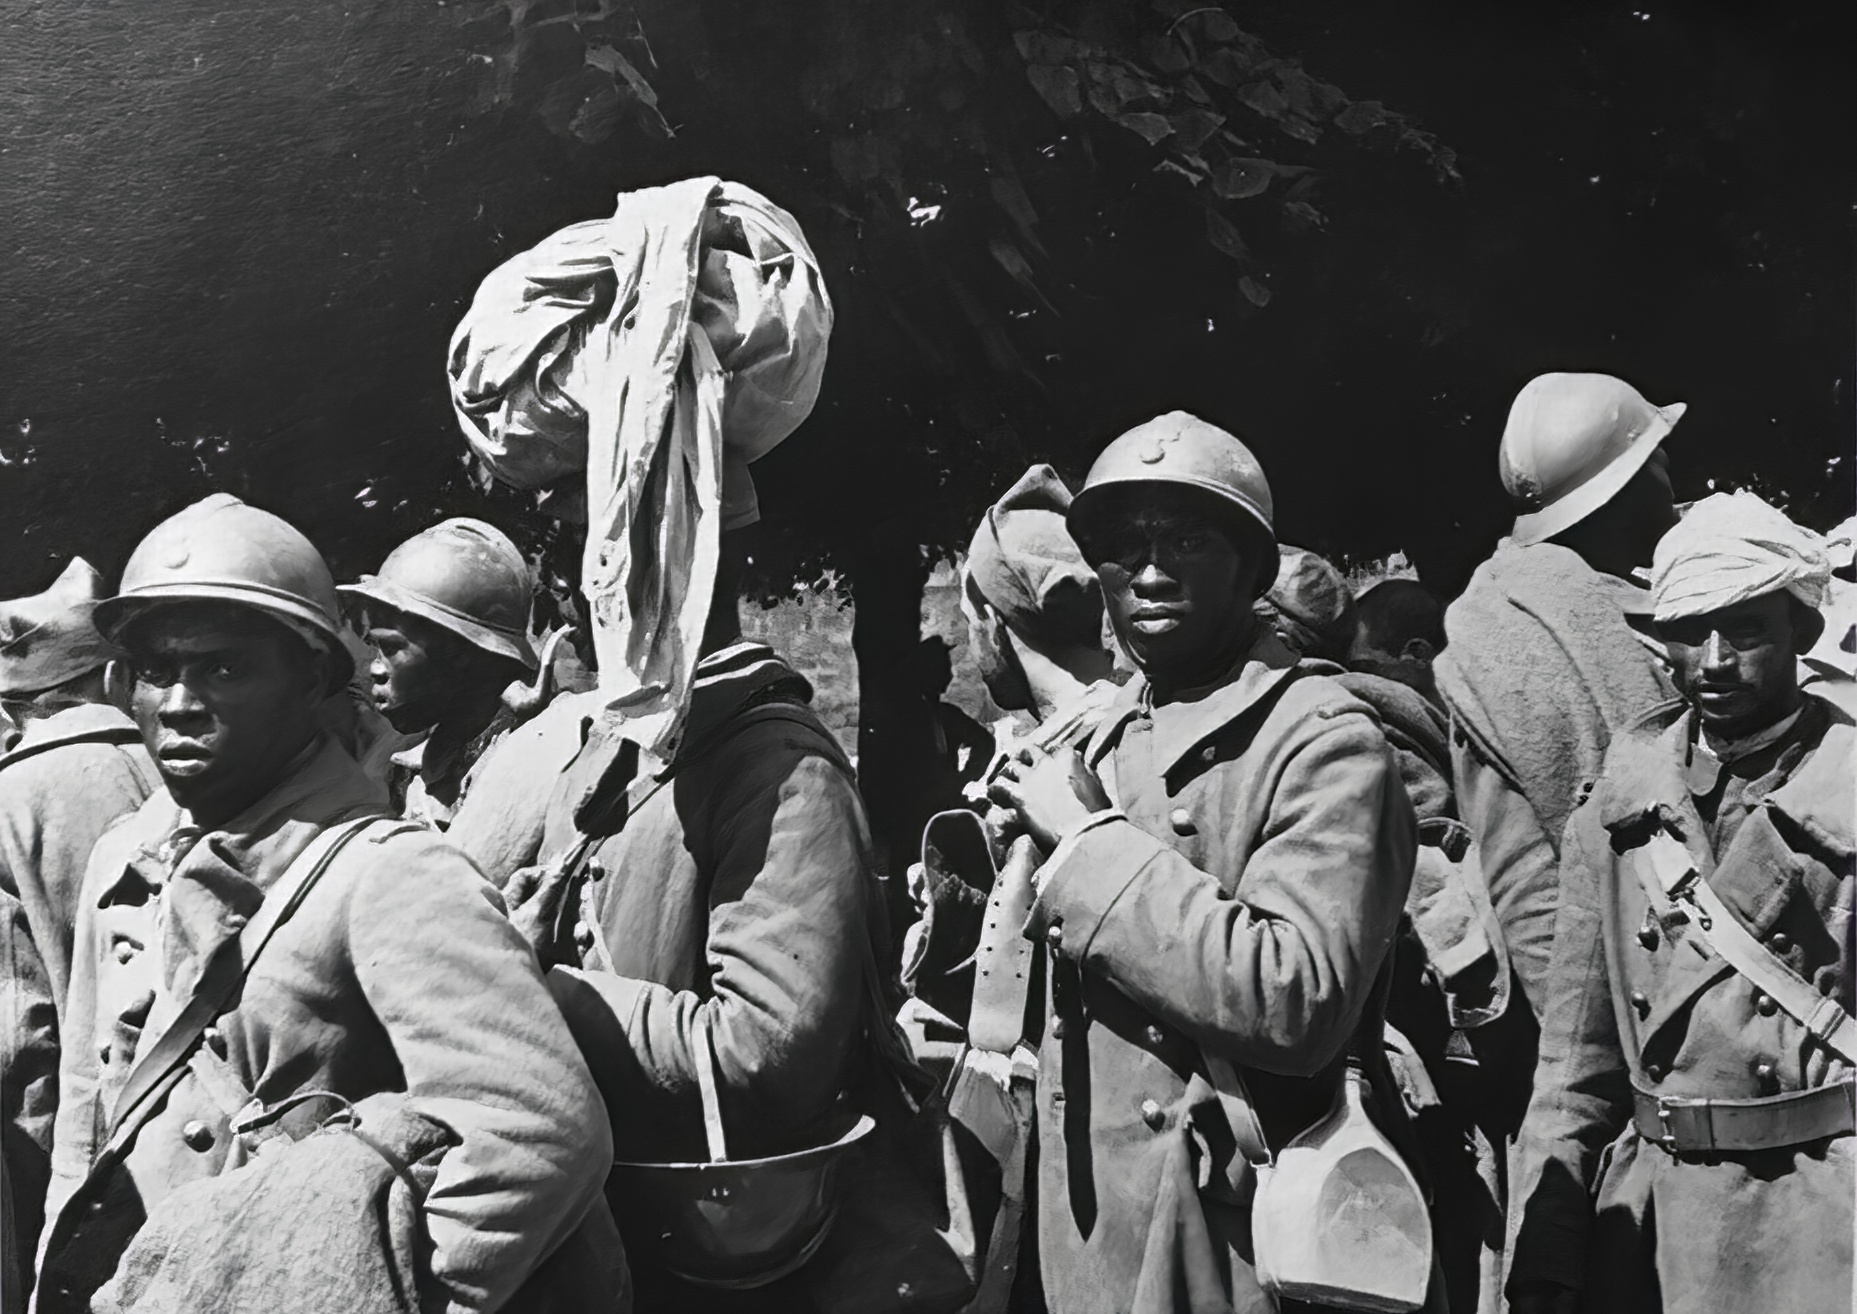 French soldiers disarm after France capitulation 25th June 1940 ebay 02